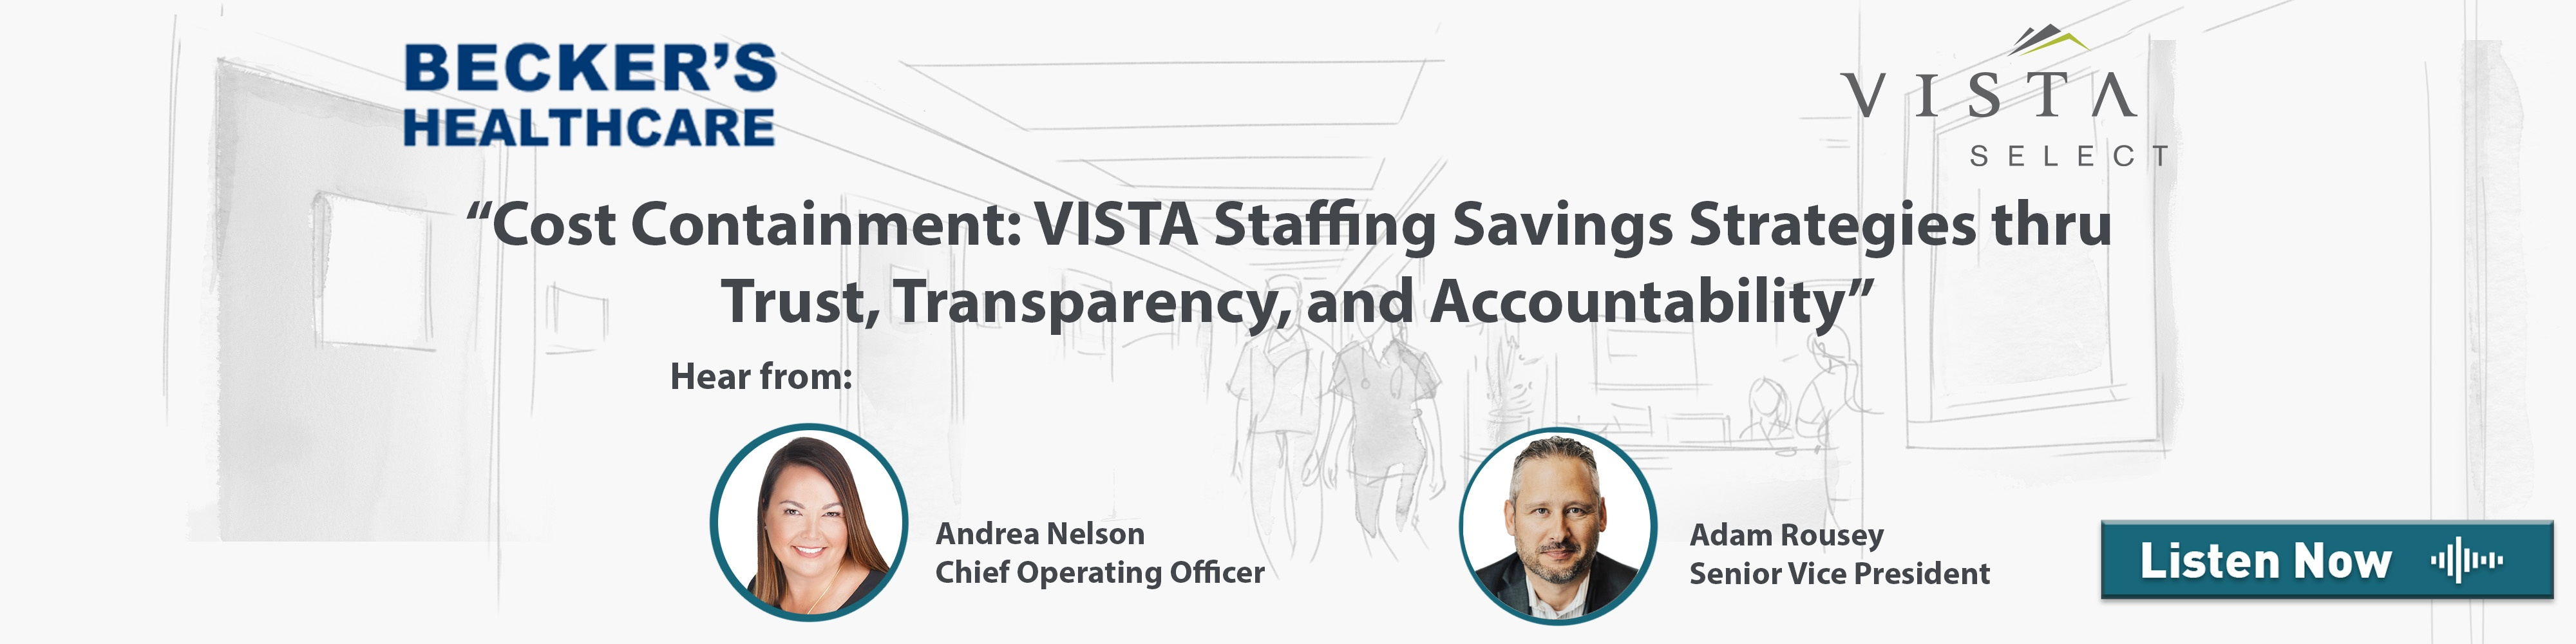 Cost Containment: VISTA Staffing Savings Strategies Thru Trust, Transparency, and Accountability